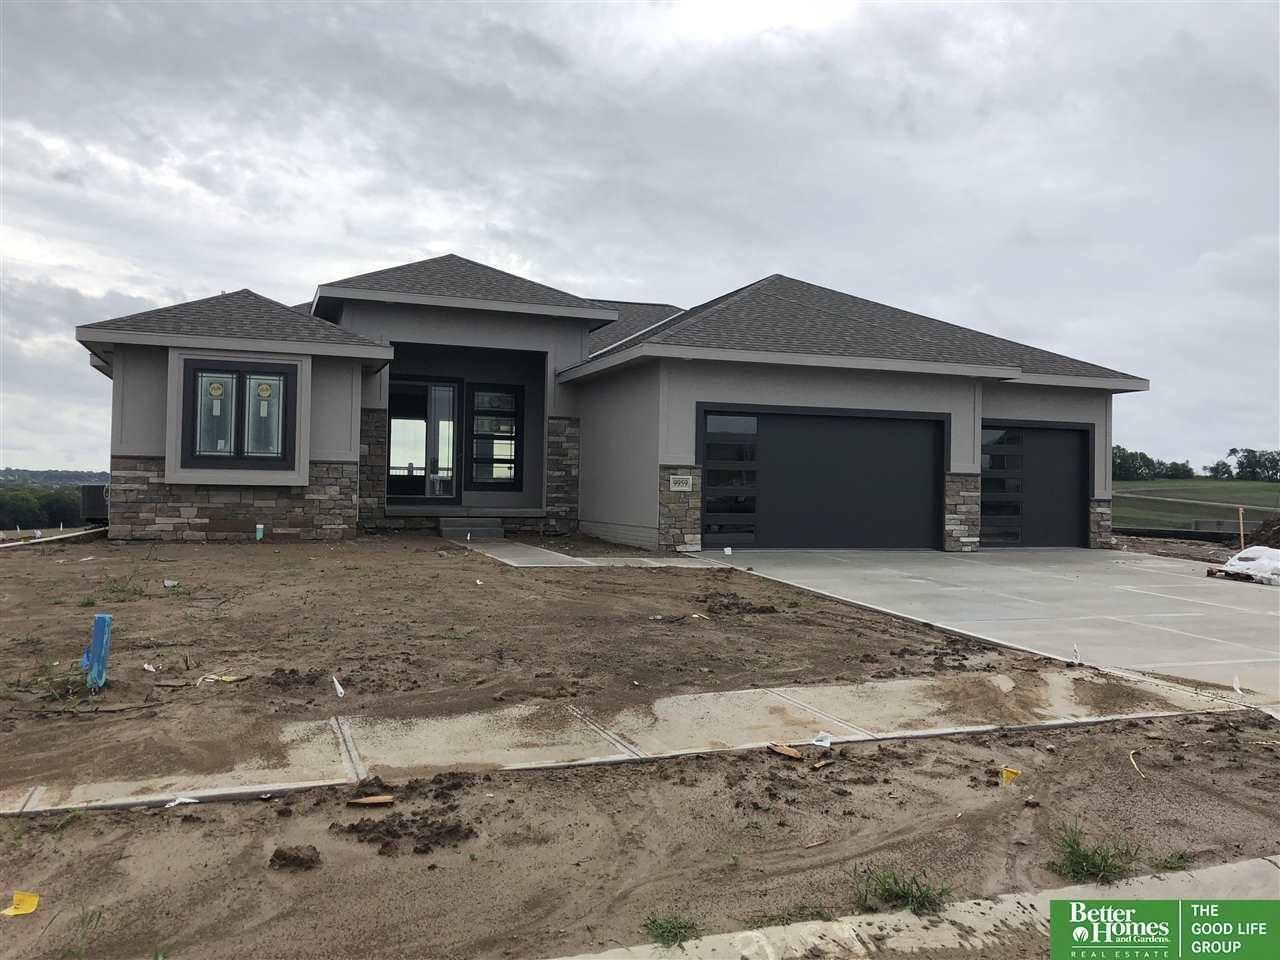 9959 S 105th St Papillion 25 Lot Size But Really Nice Inside Beautiful House Plans Brick Exterior House House Plan Gallery